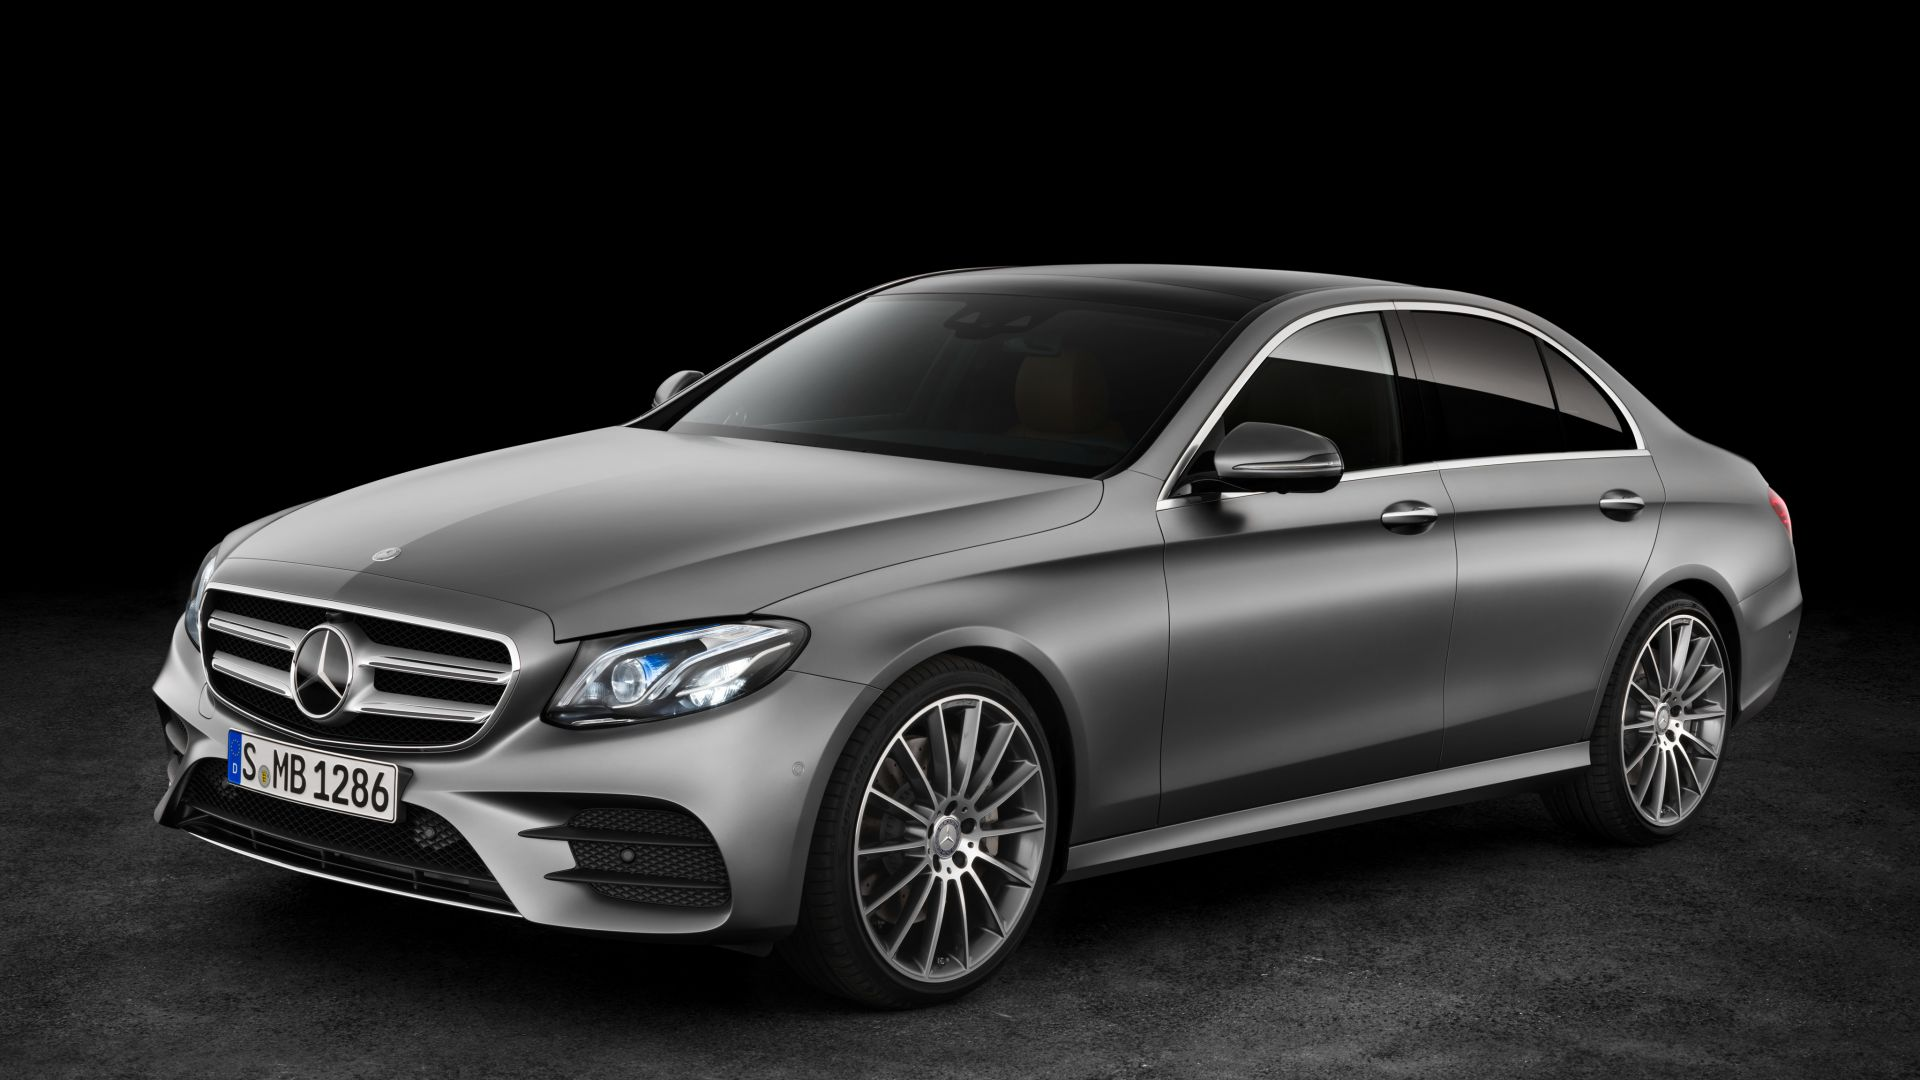 Mercedes Benz E 400, NAIAS 2016, sedan, grey (horizontal)